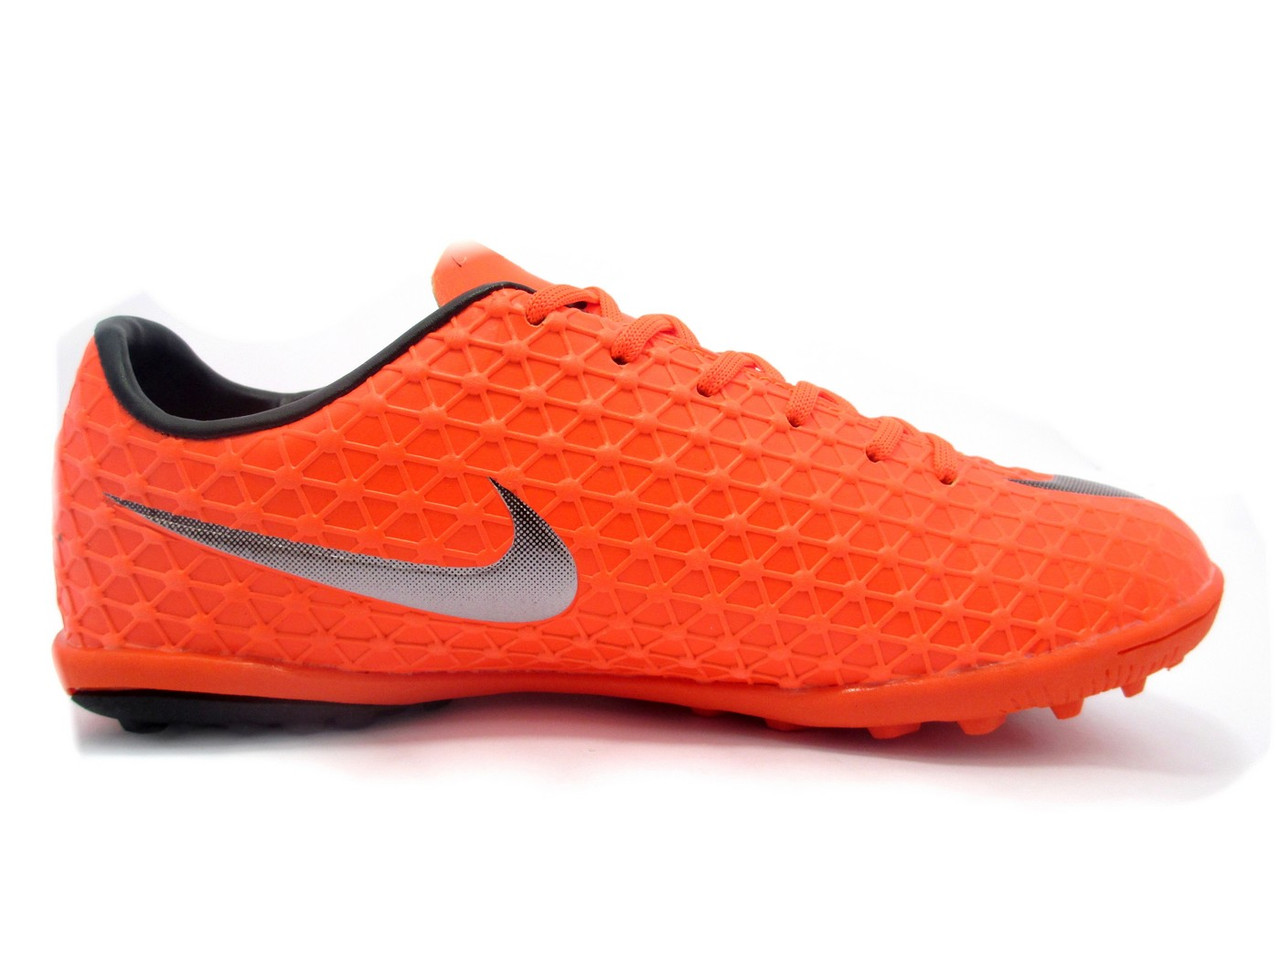 Футбольные сороконожки Nike Mercurial Victory TF Total Crimson/Metallic Silver/Black